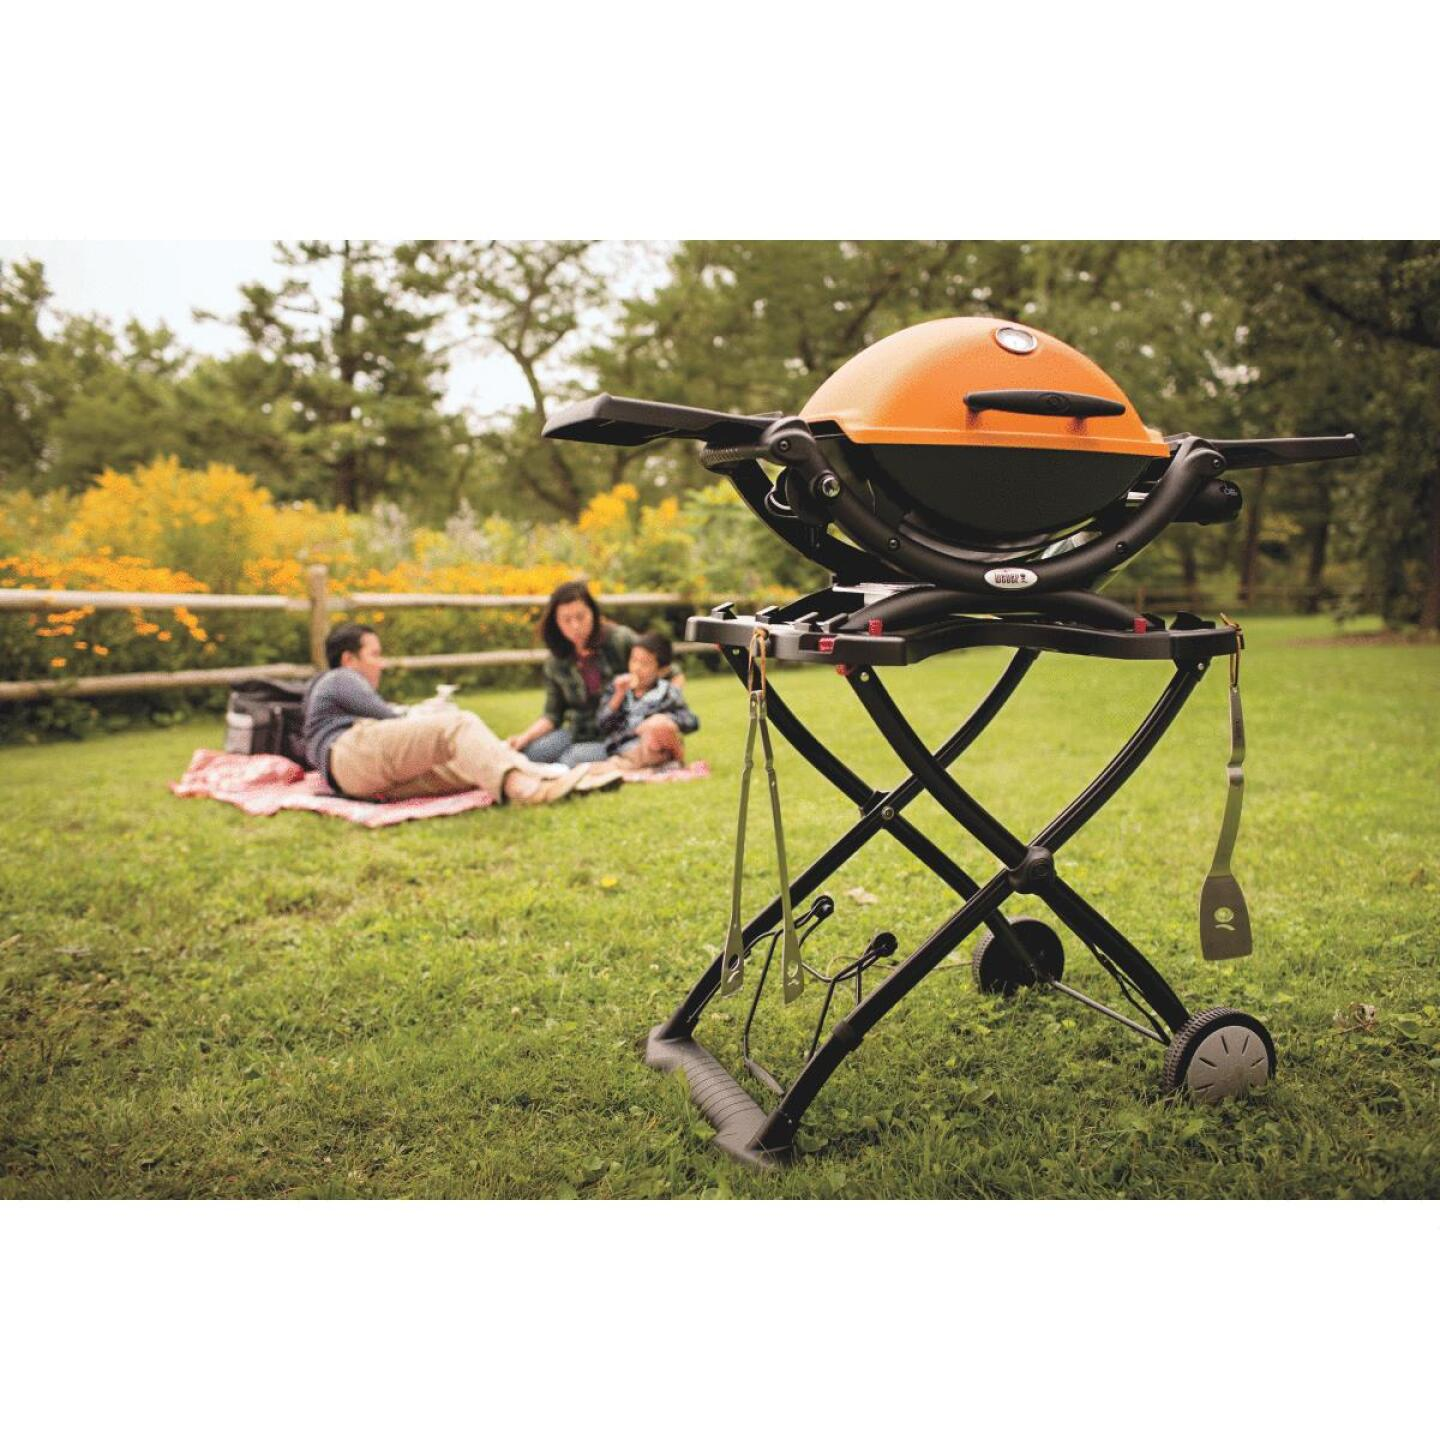 Weber Q 1200 1-Burner Orange 8,500-BTU LP Gas Grill Image 2